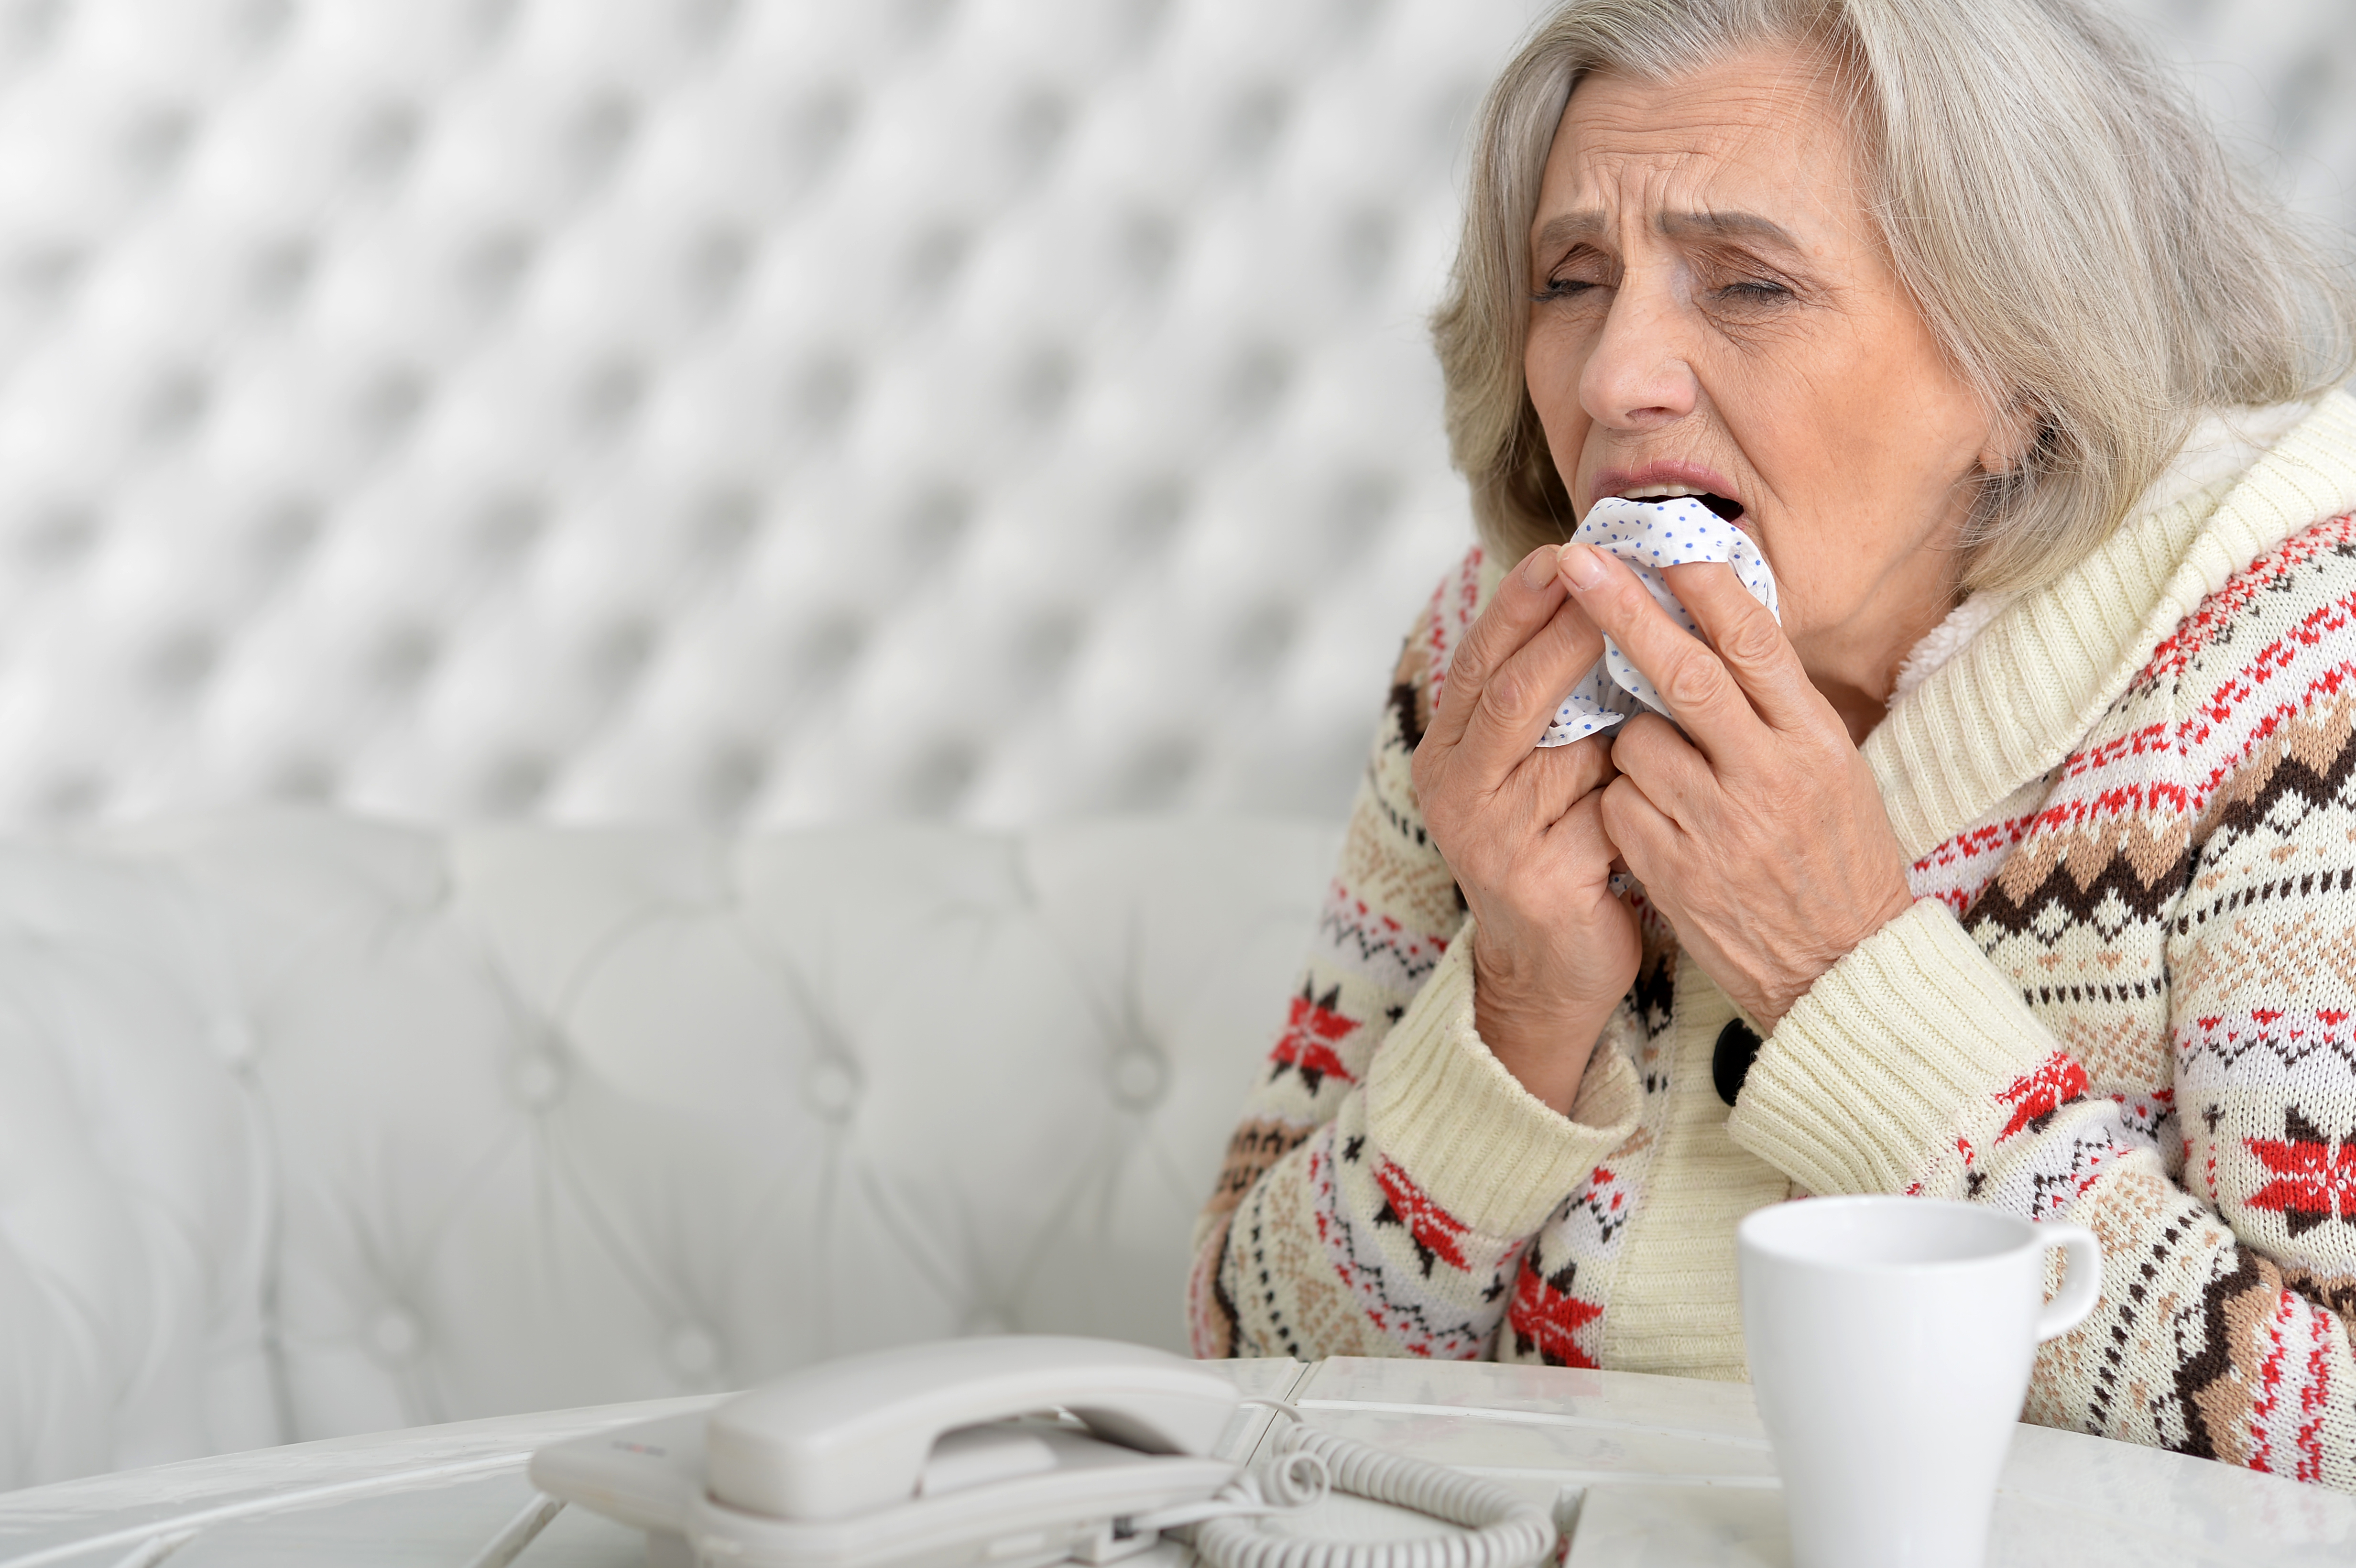 Bad Cough in Elderly: When to Go to ER